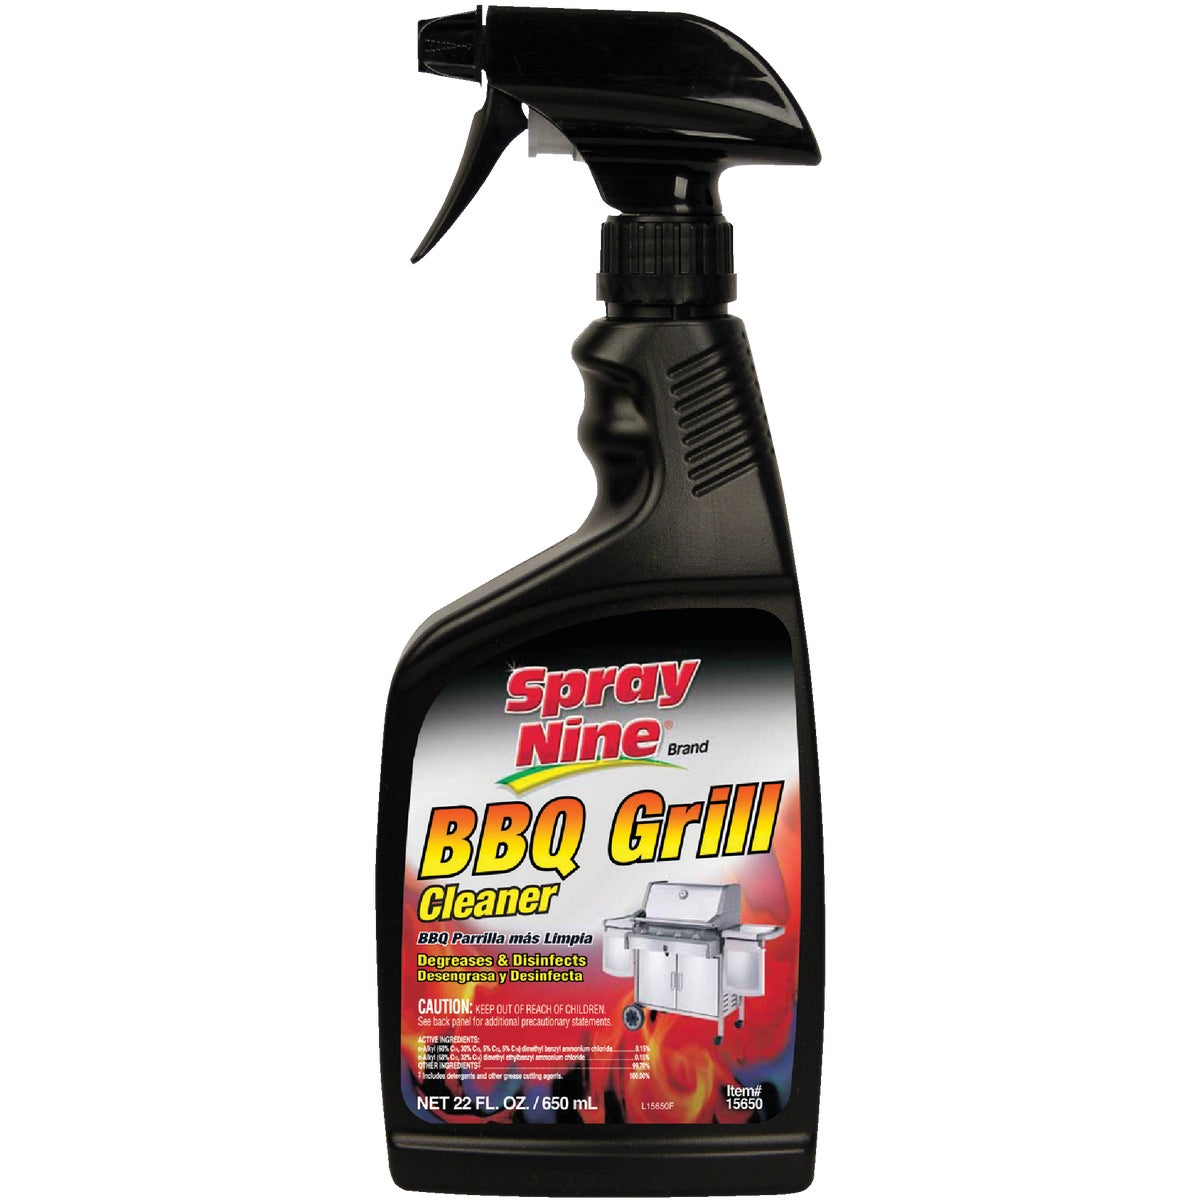 22OZ BBQ GRILL CLEANER